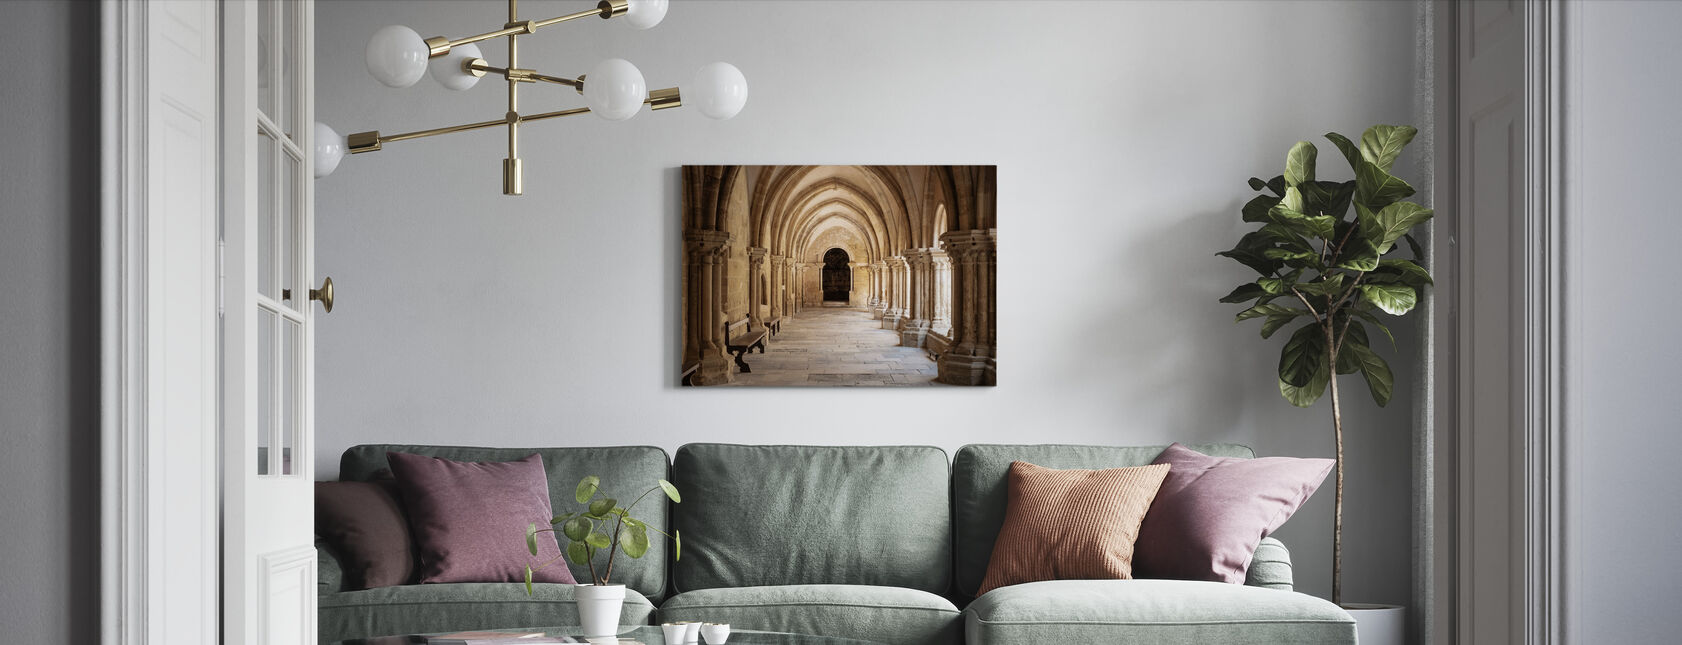 Hallway - Canvas print - Living Room